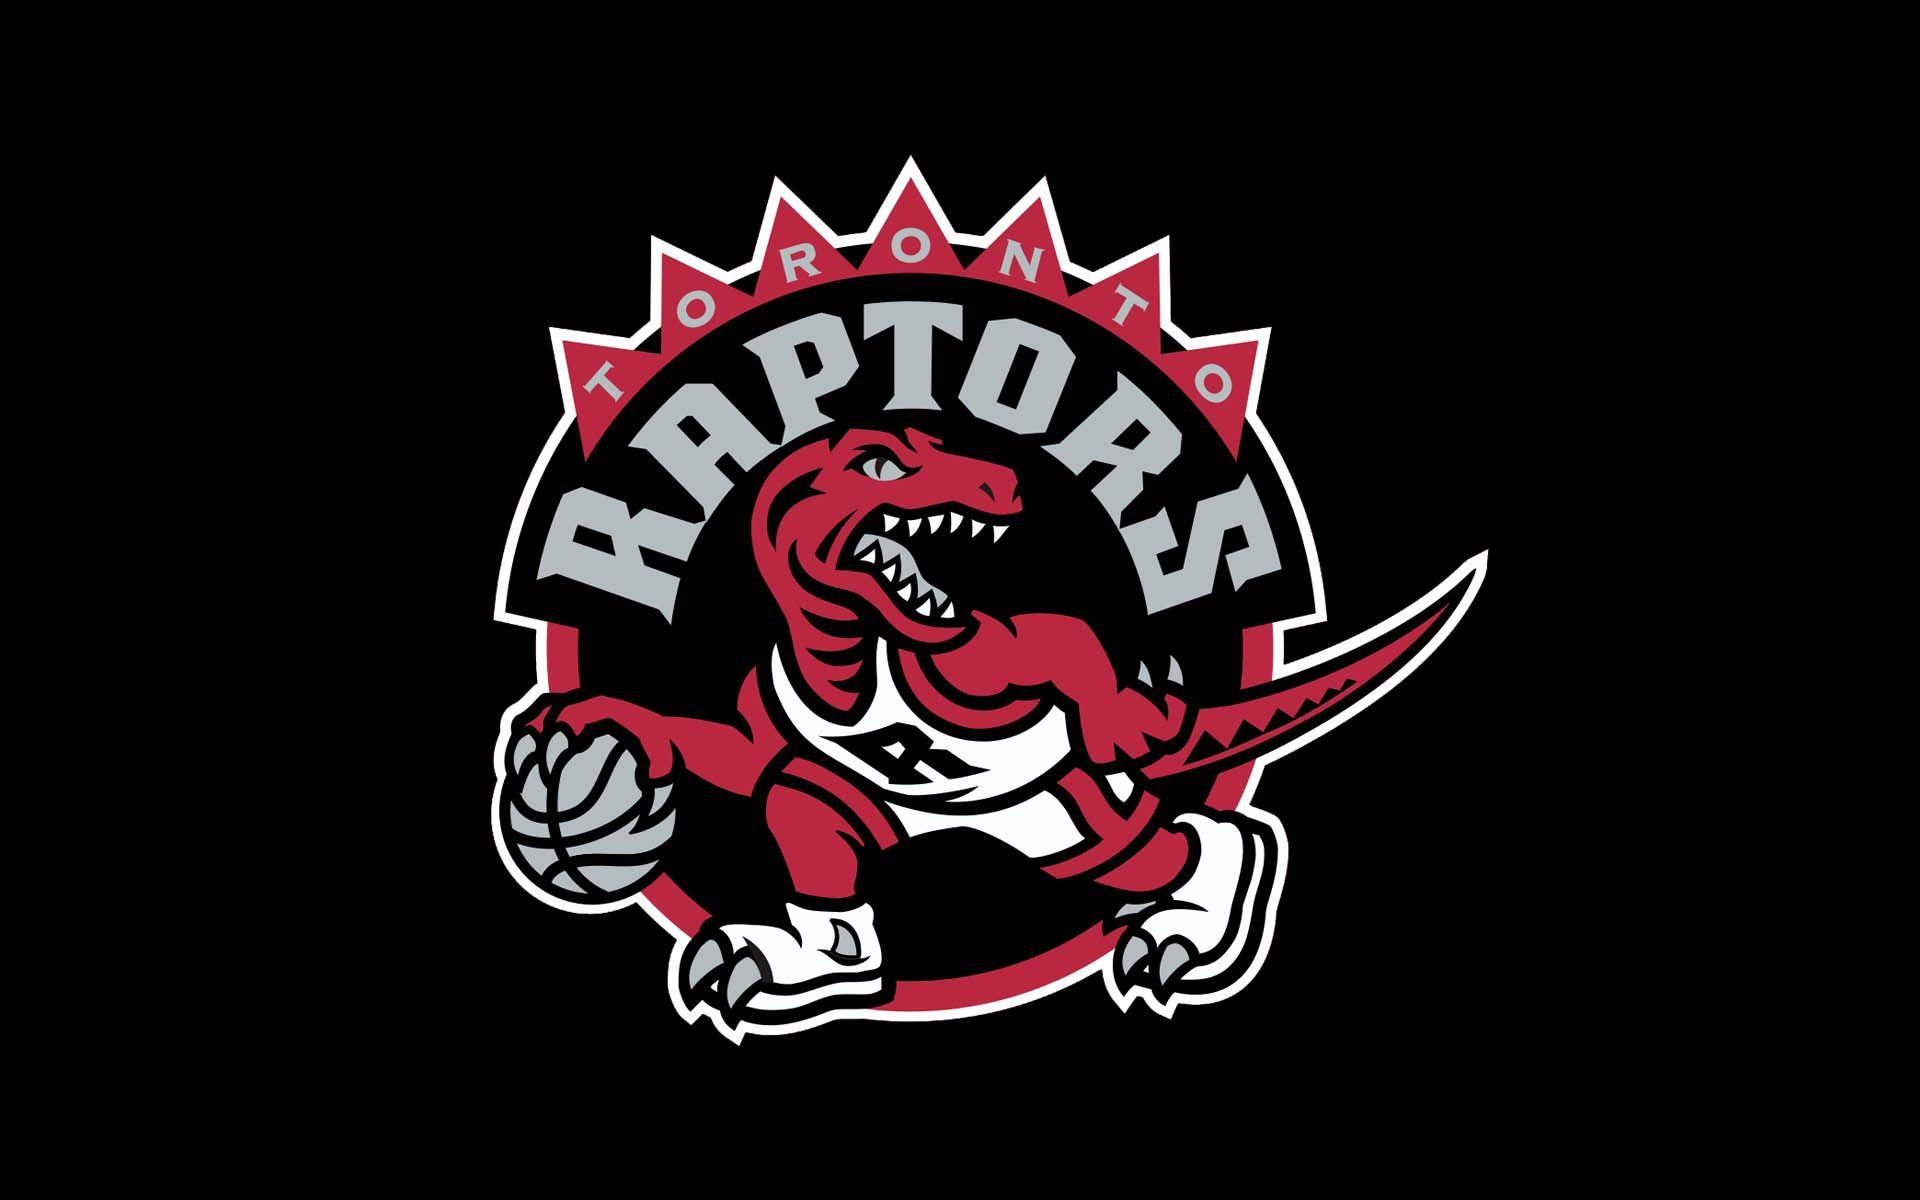 Toronto Raptors Wallpapers.